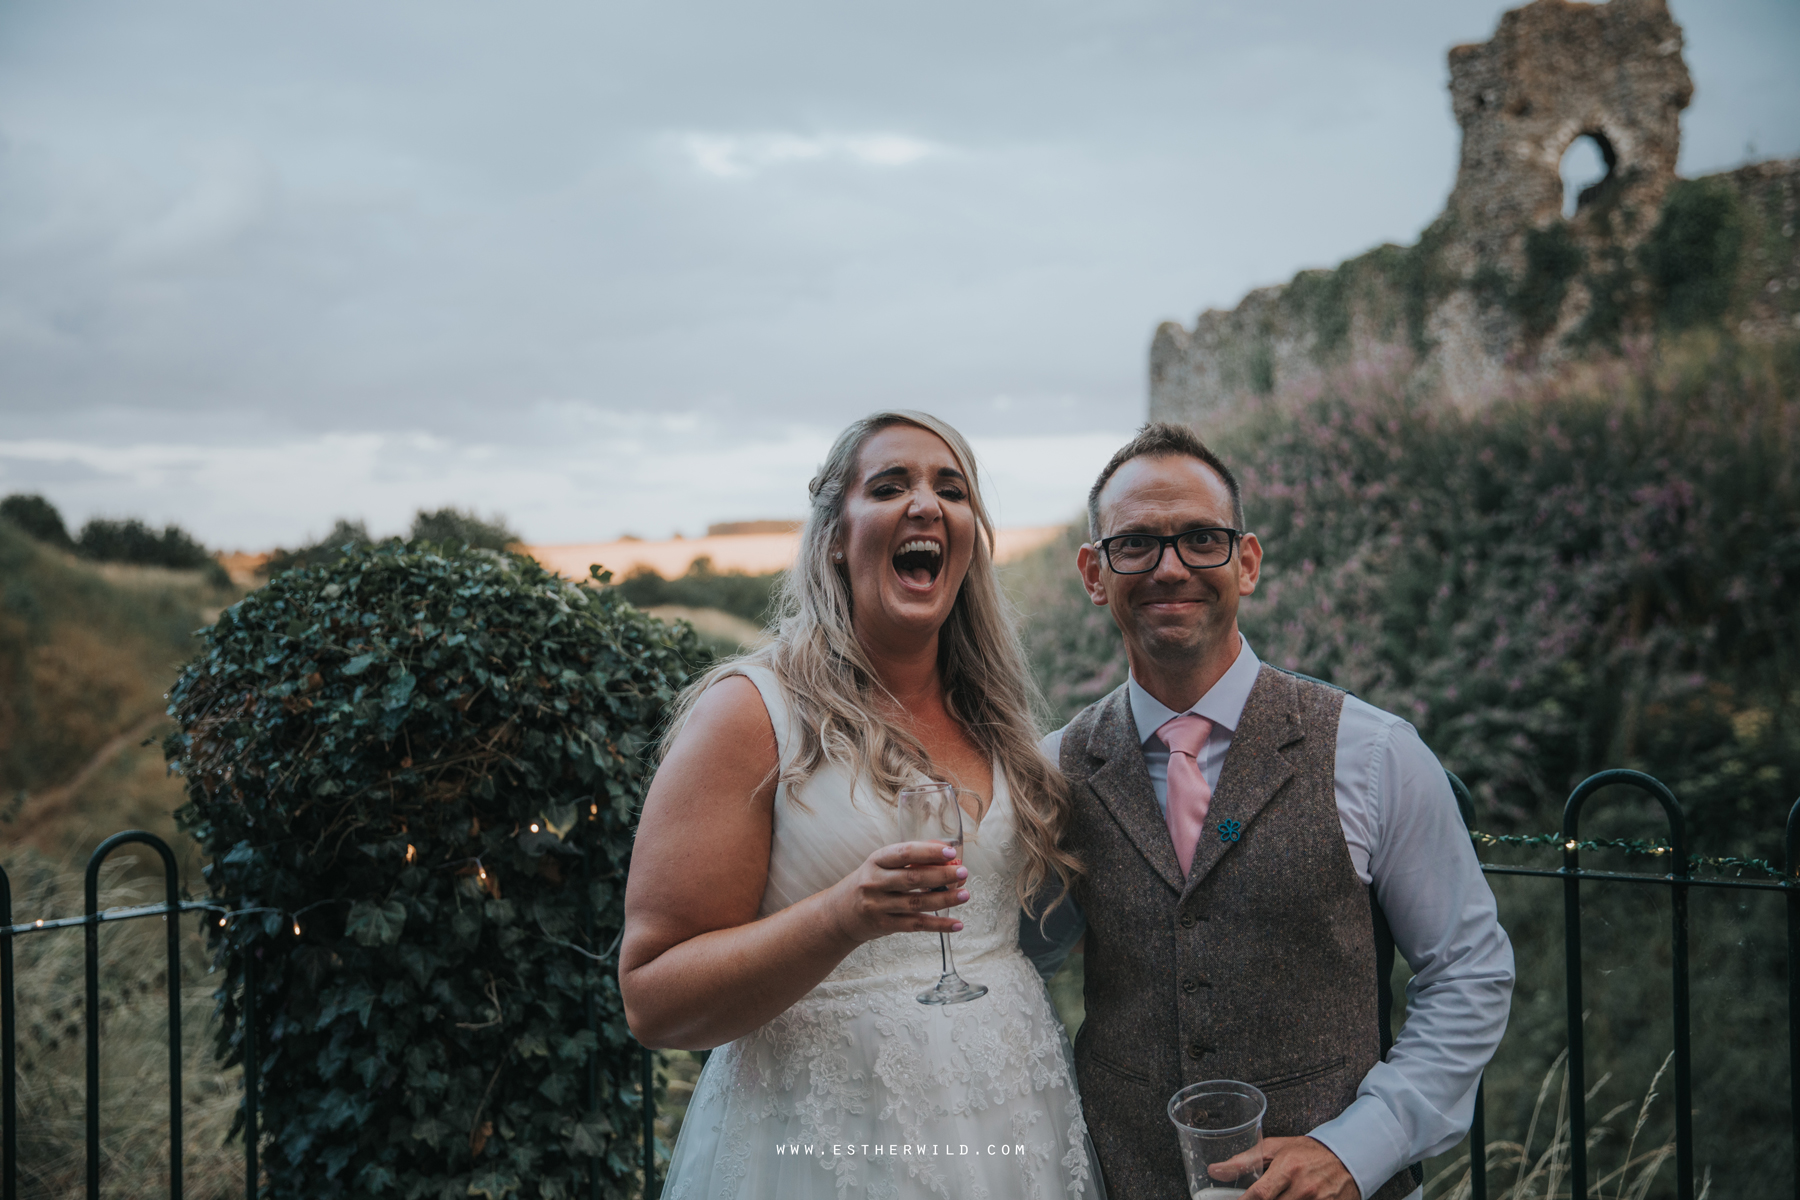 Swaffham_Wedding_Castle_Acre_Norfolk_Esther_Wild_Photographer_Wedding_Photography_3R8A2462.jpg